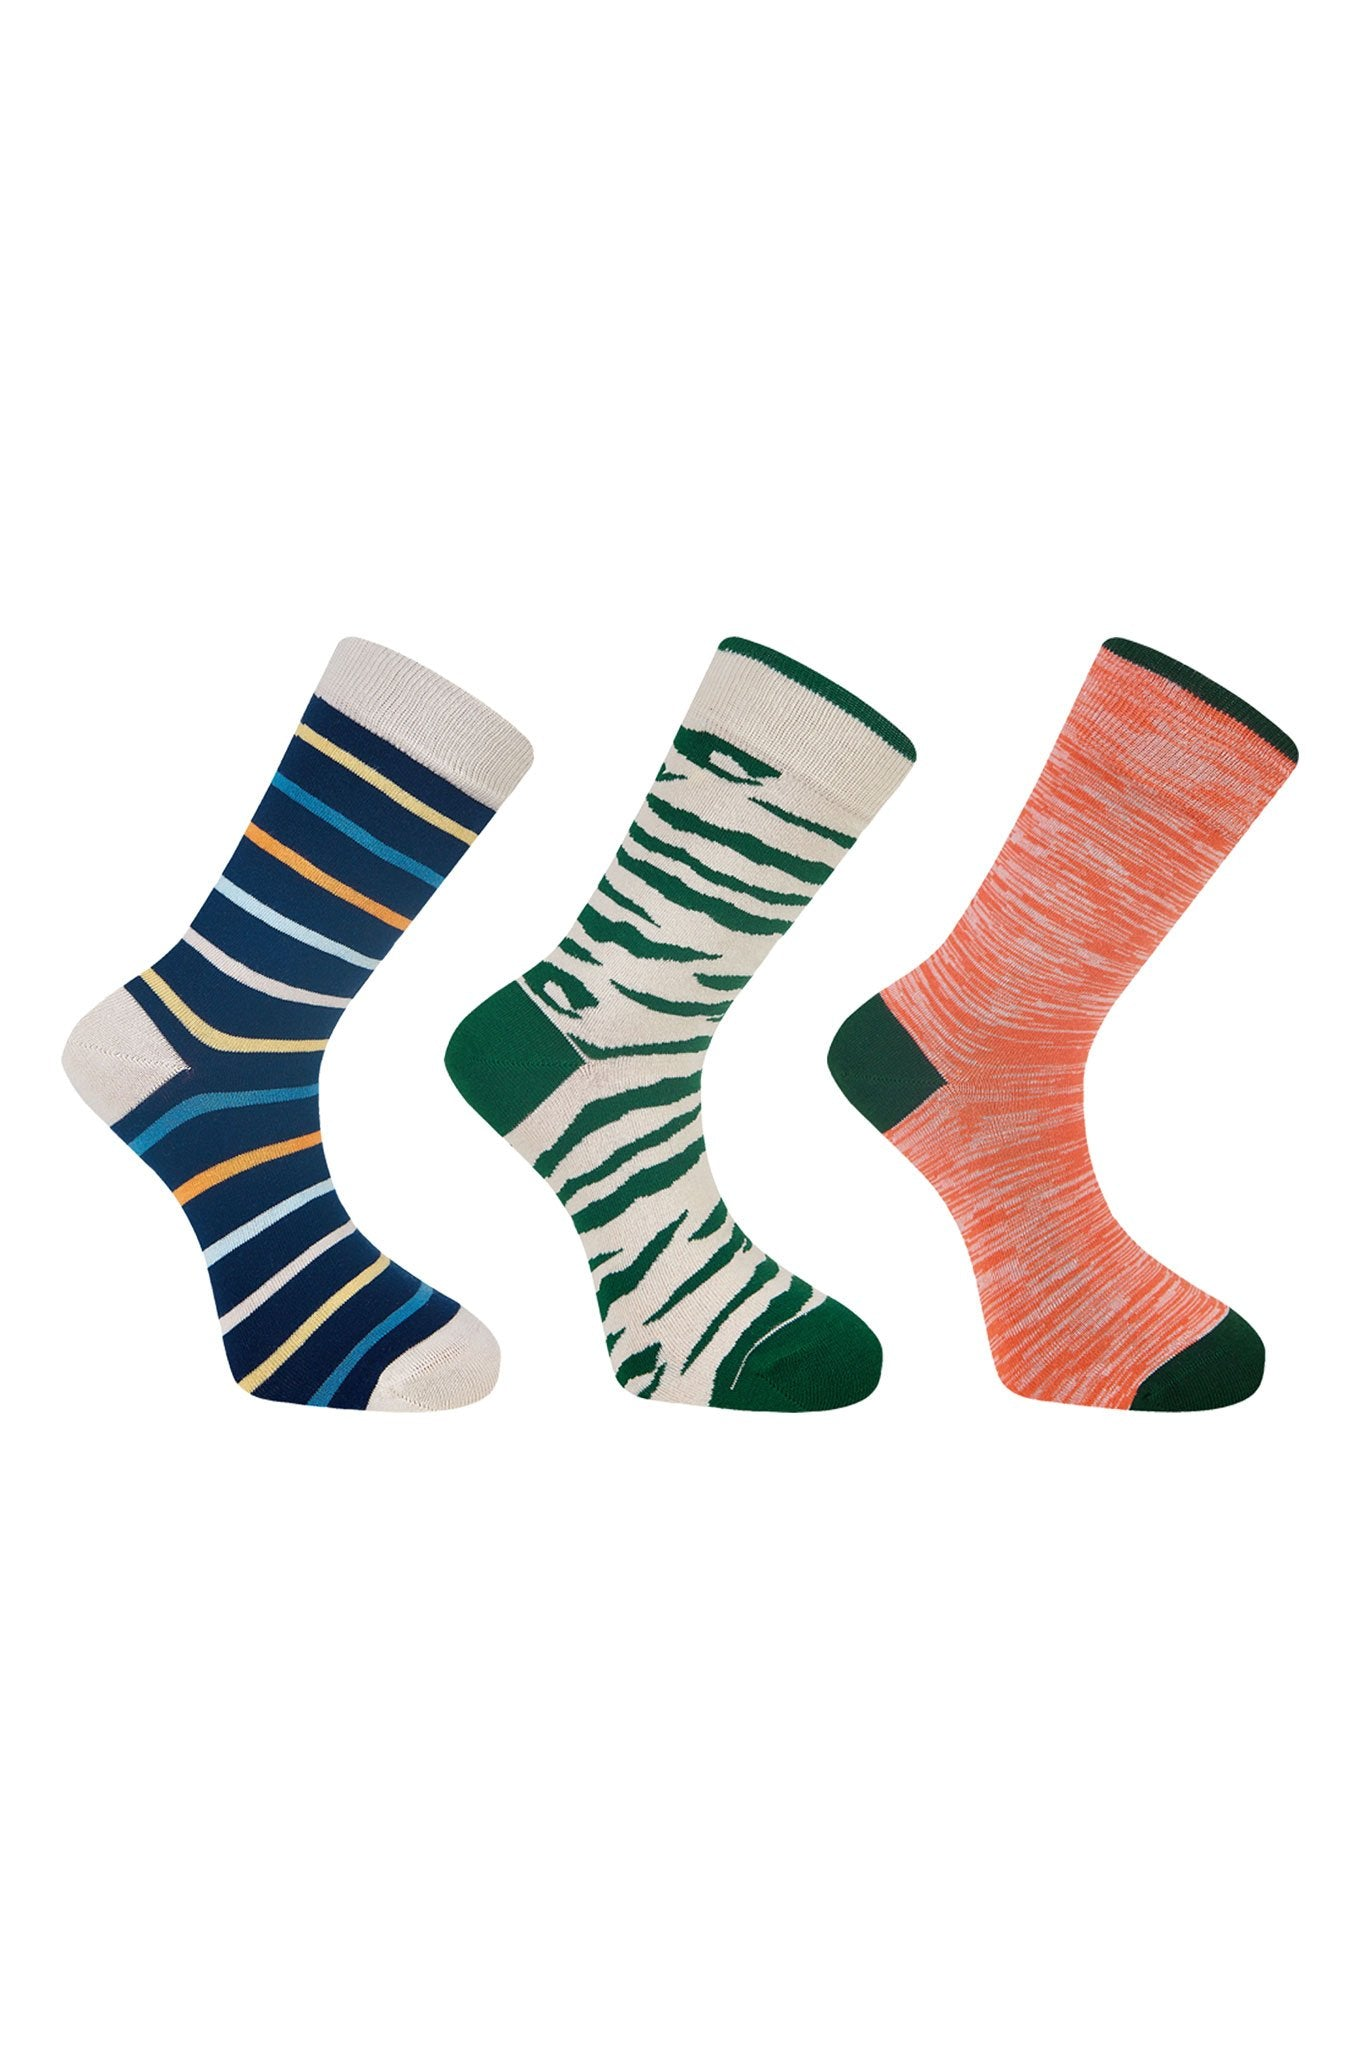 LUCKY DIP - GOTS Organic Cotton Sock Bundle (3 Pairs)